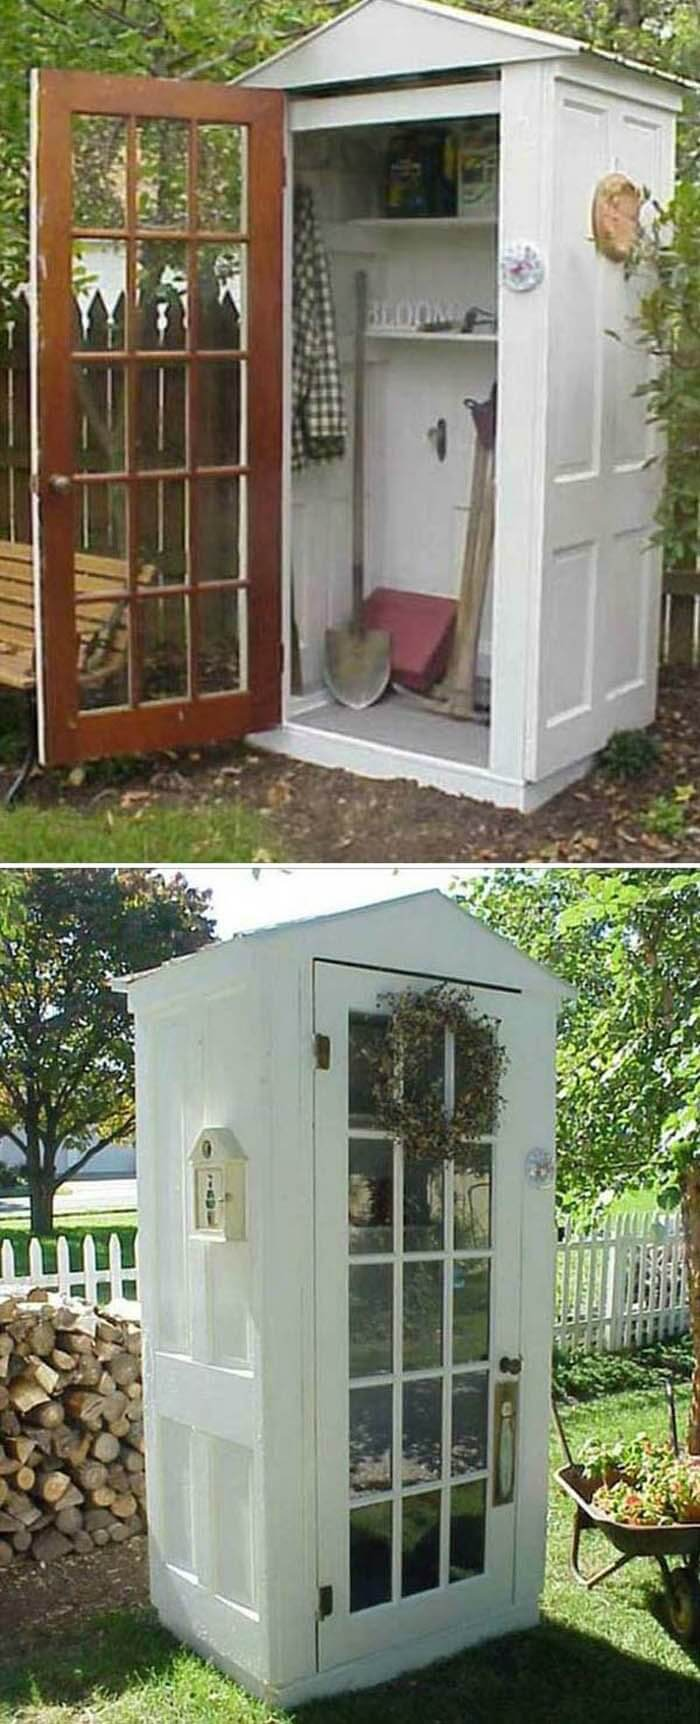 A Whimsical, Booth-Like, Glass Door Storage Shed